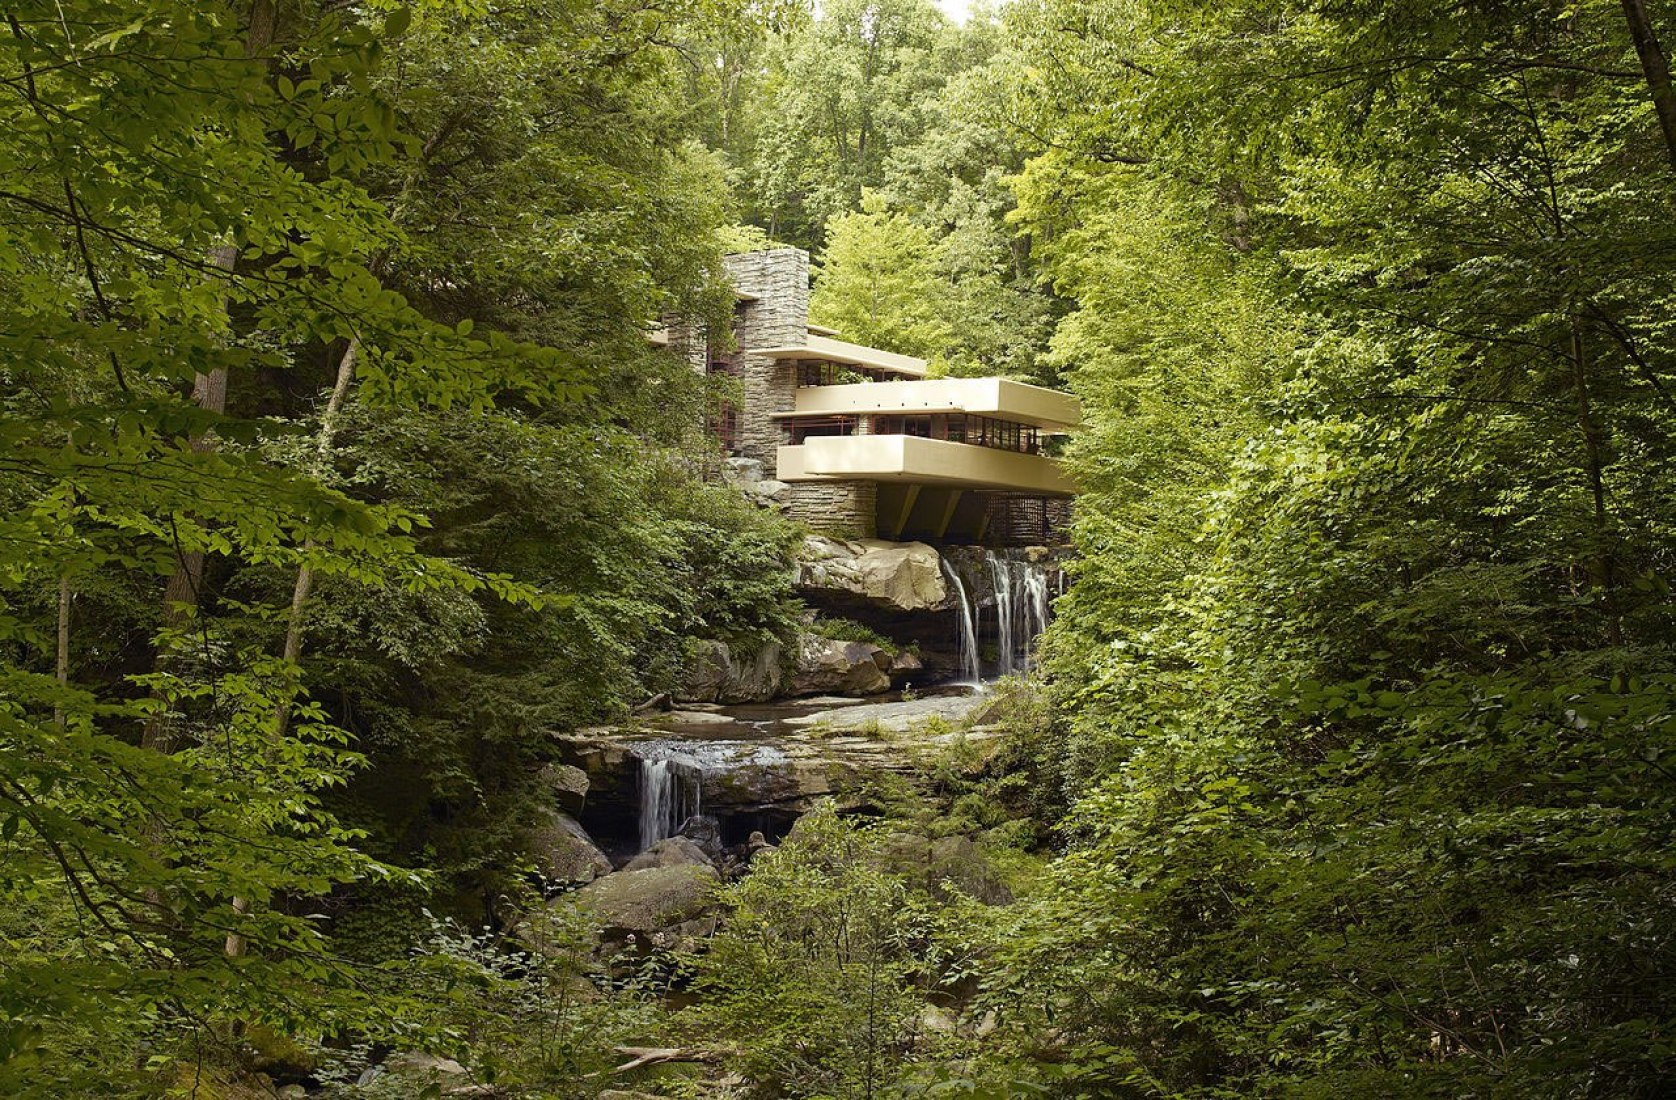 Distant southwestern view. Fallingwater by Frank Lloyd Wright. Photography © Carol M. Highsmith.